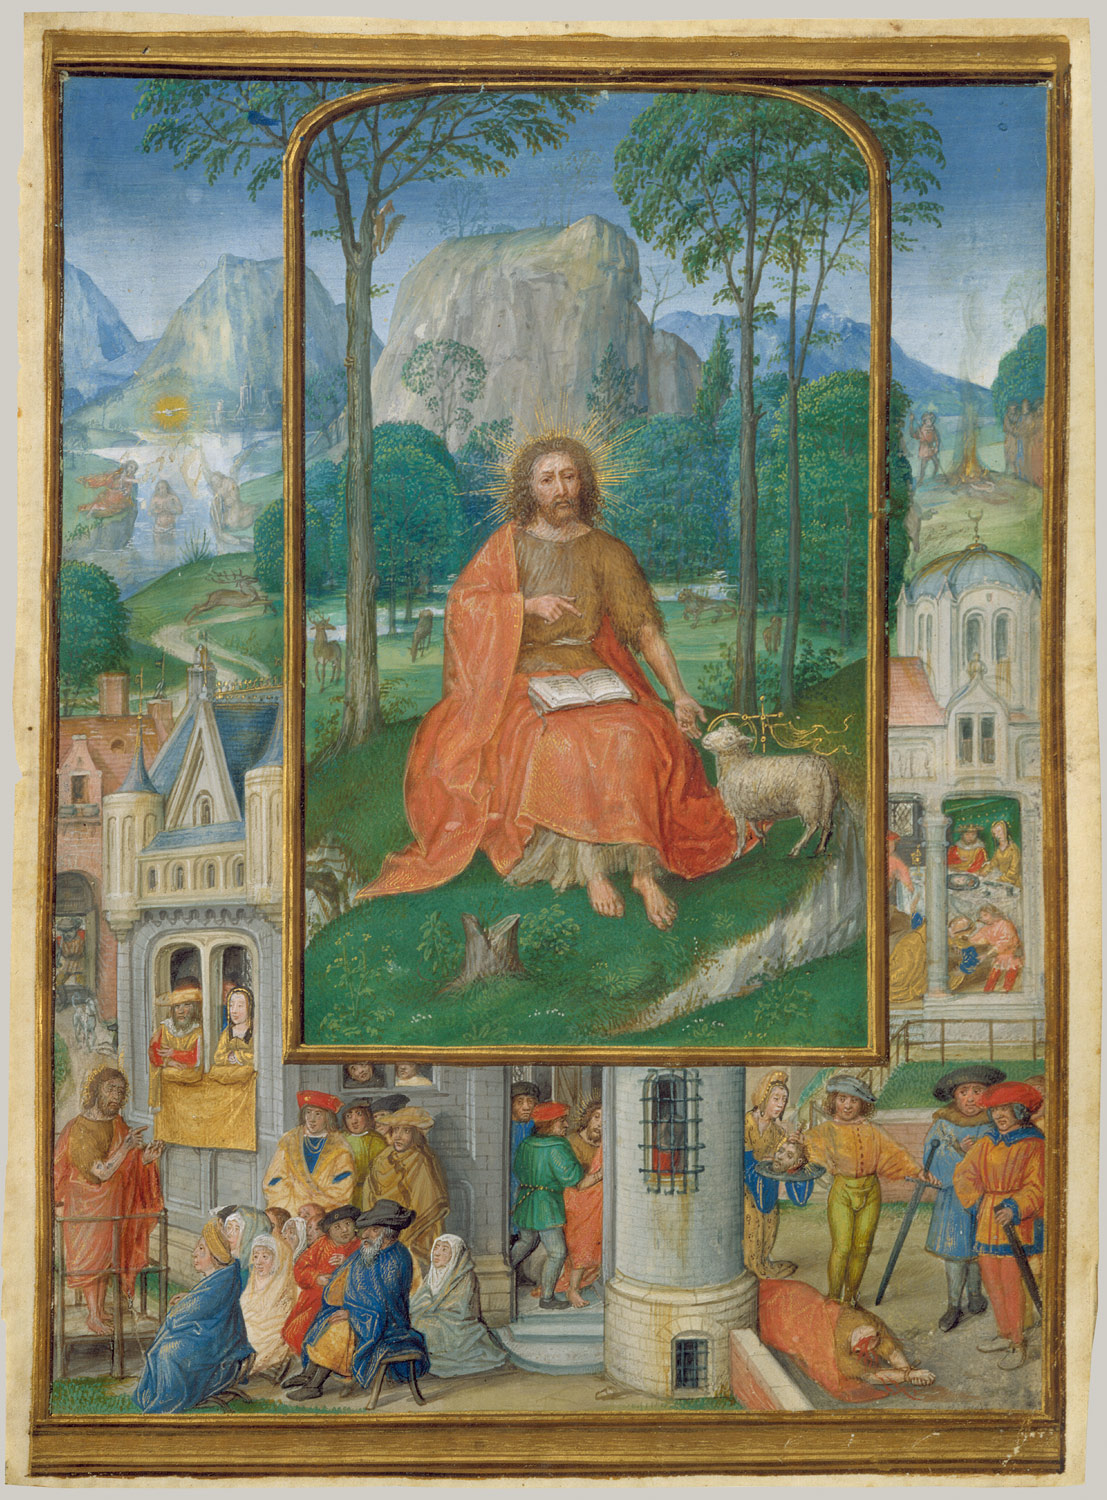 Manuscript Illumination with Scenes from the Life of Saint John the Baptist